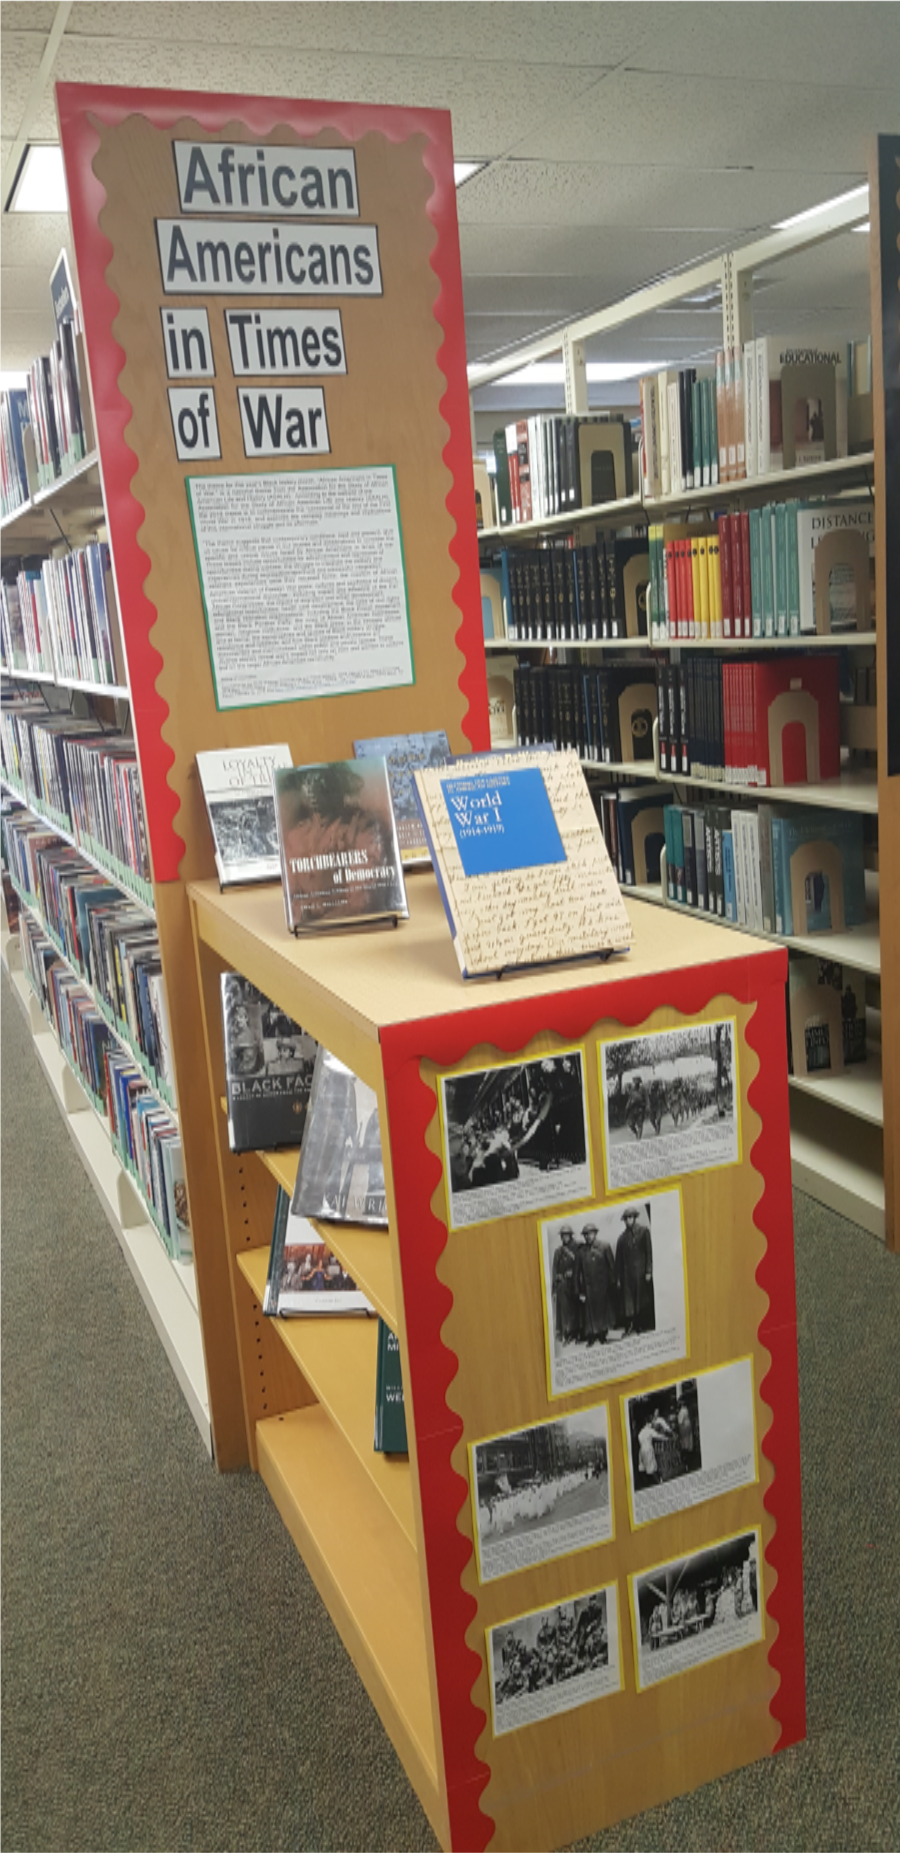 Black History Month Display, Feb. 2018